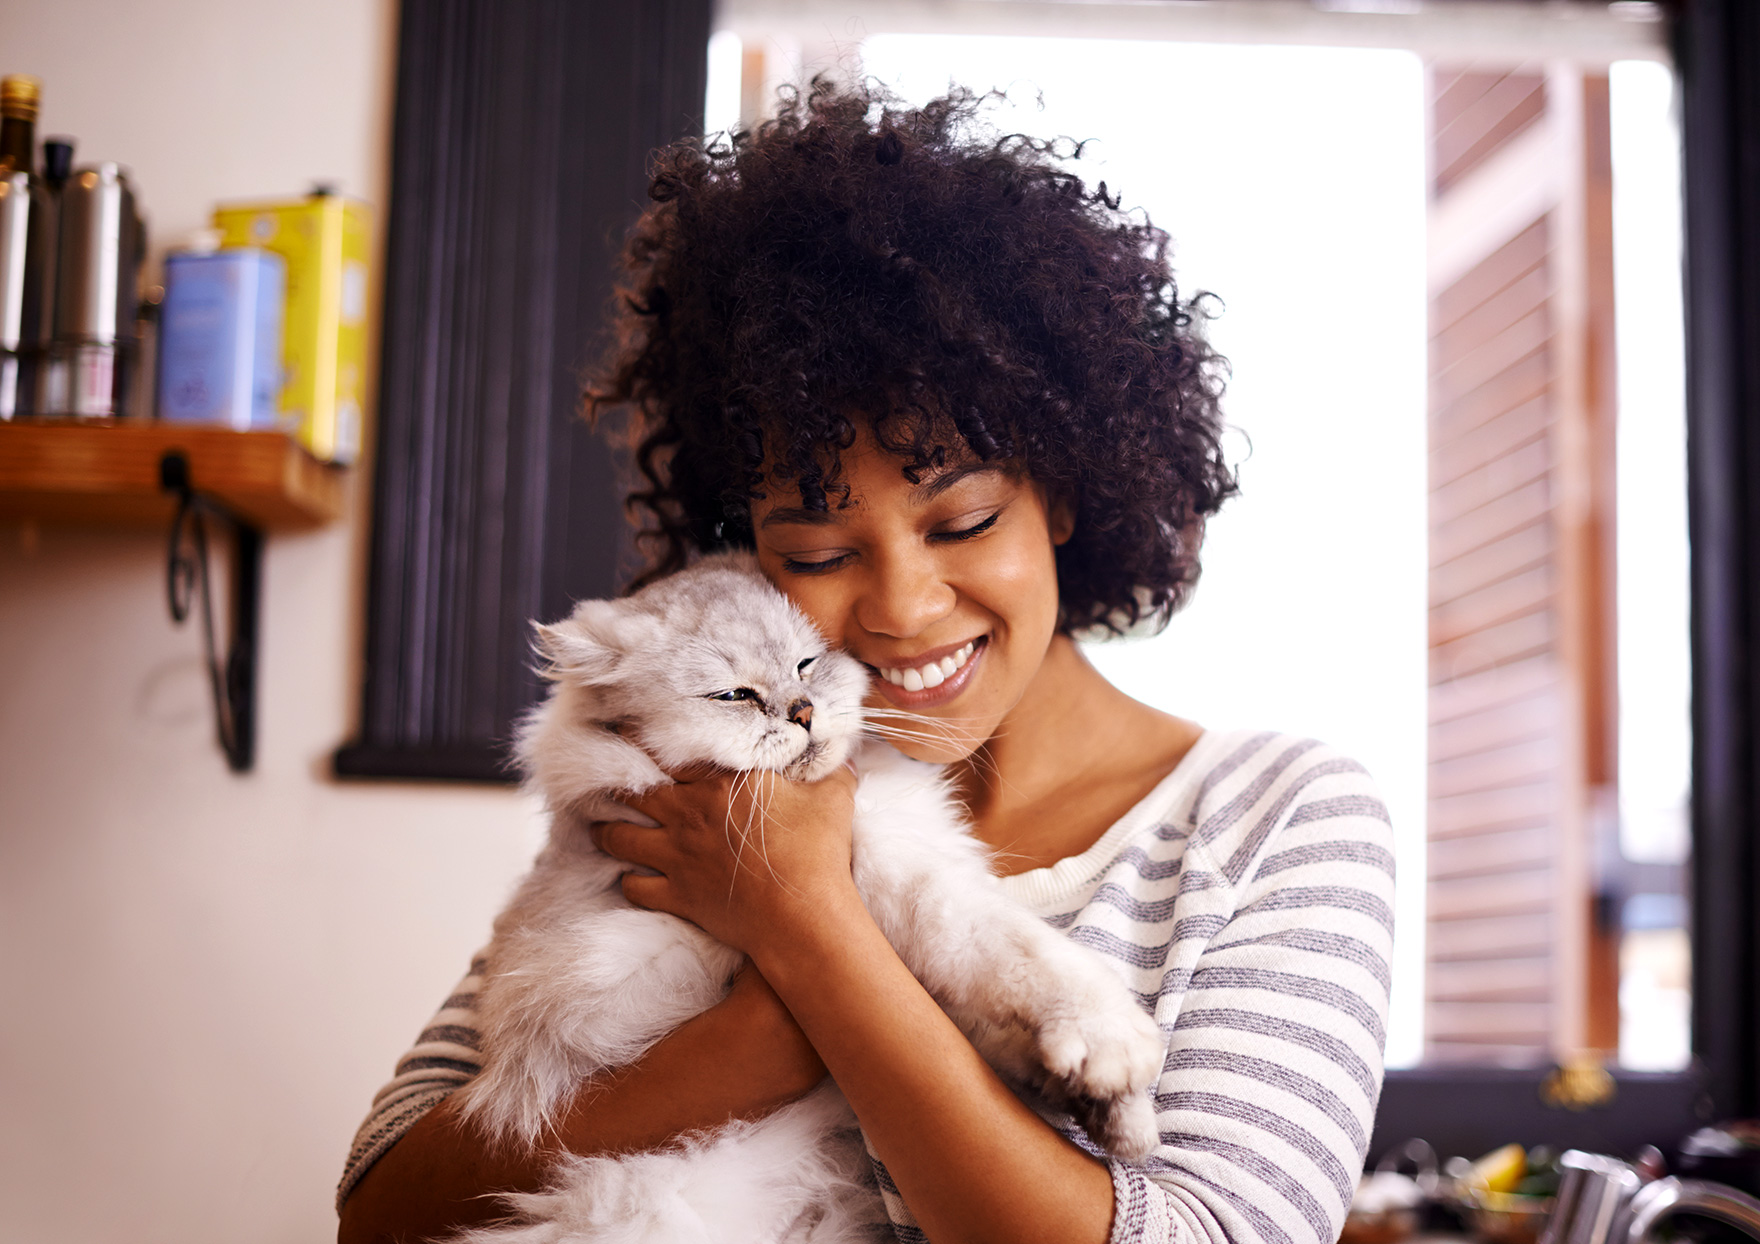 woman smiling and holding cat